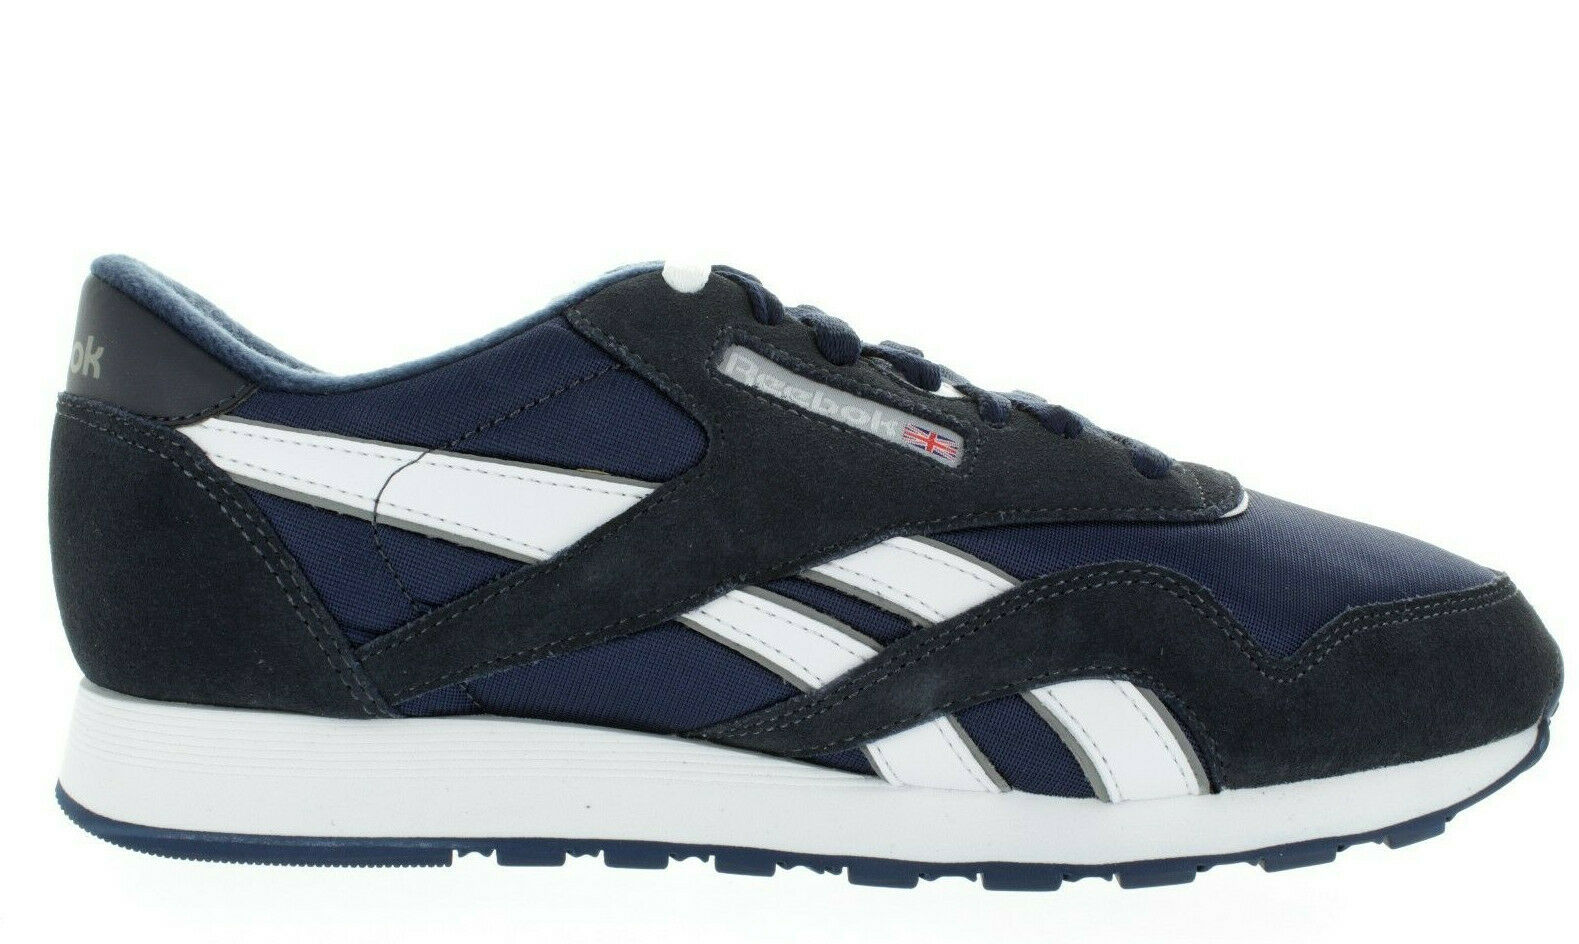 MEN'S REEBOK CL NYLON 39749 TEAM NAVY PLATINUM BRAND NEW DEADSTOCK